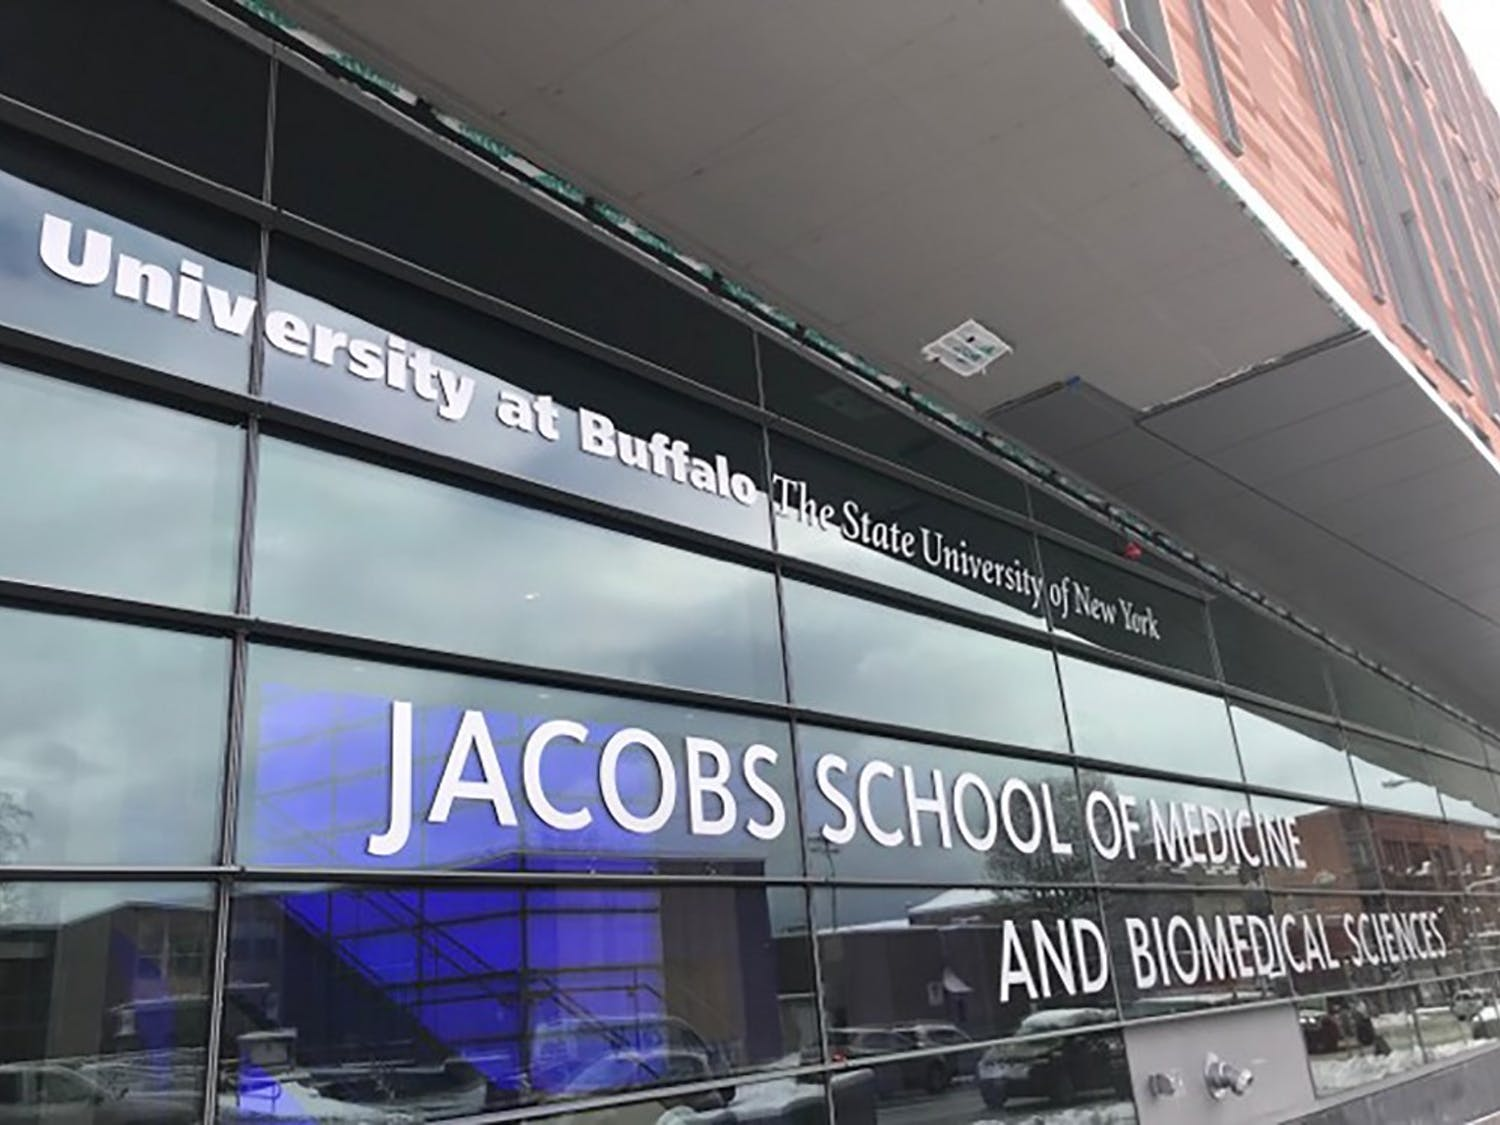 The Jacobs School of Medicine and Biomedical Sciences celebrated its grand opening on Dec. 12.